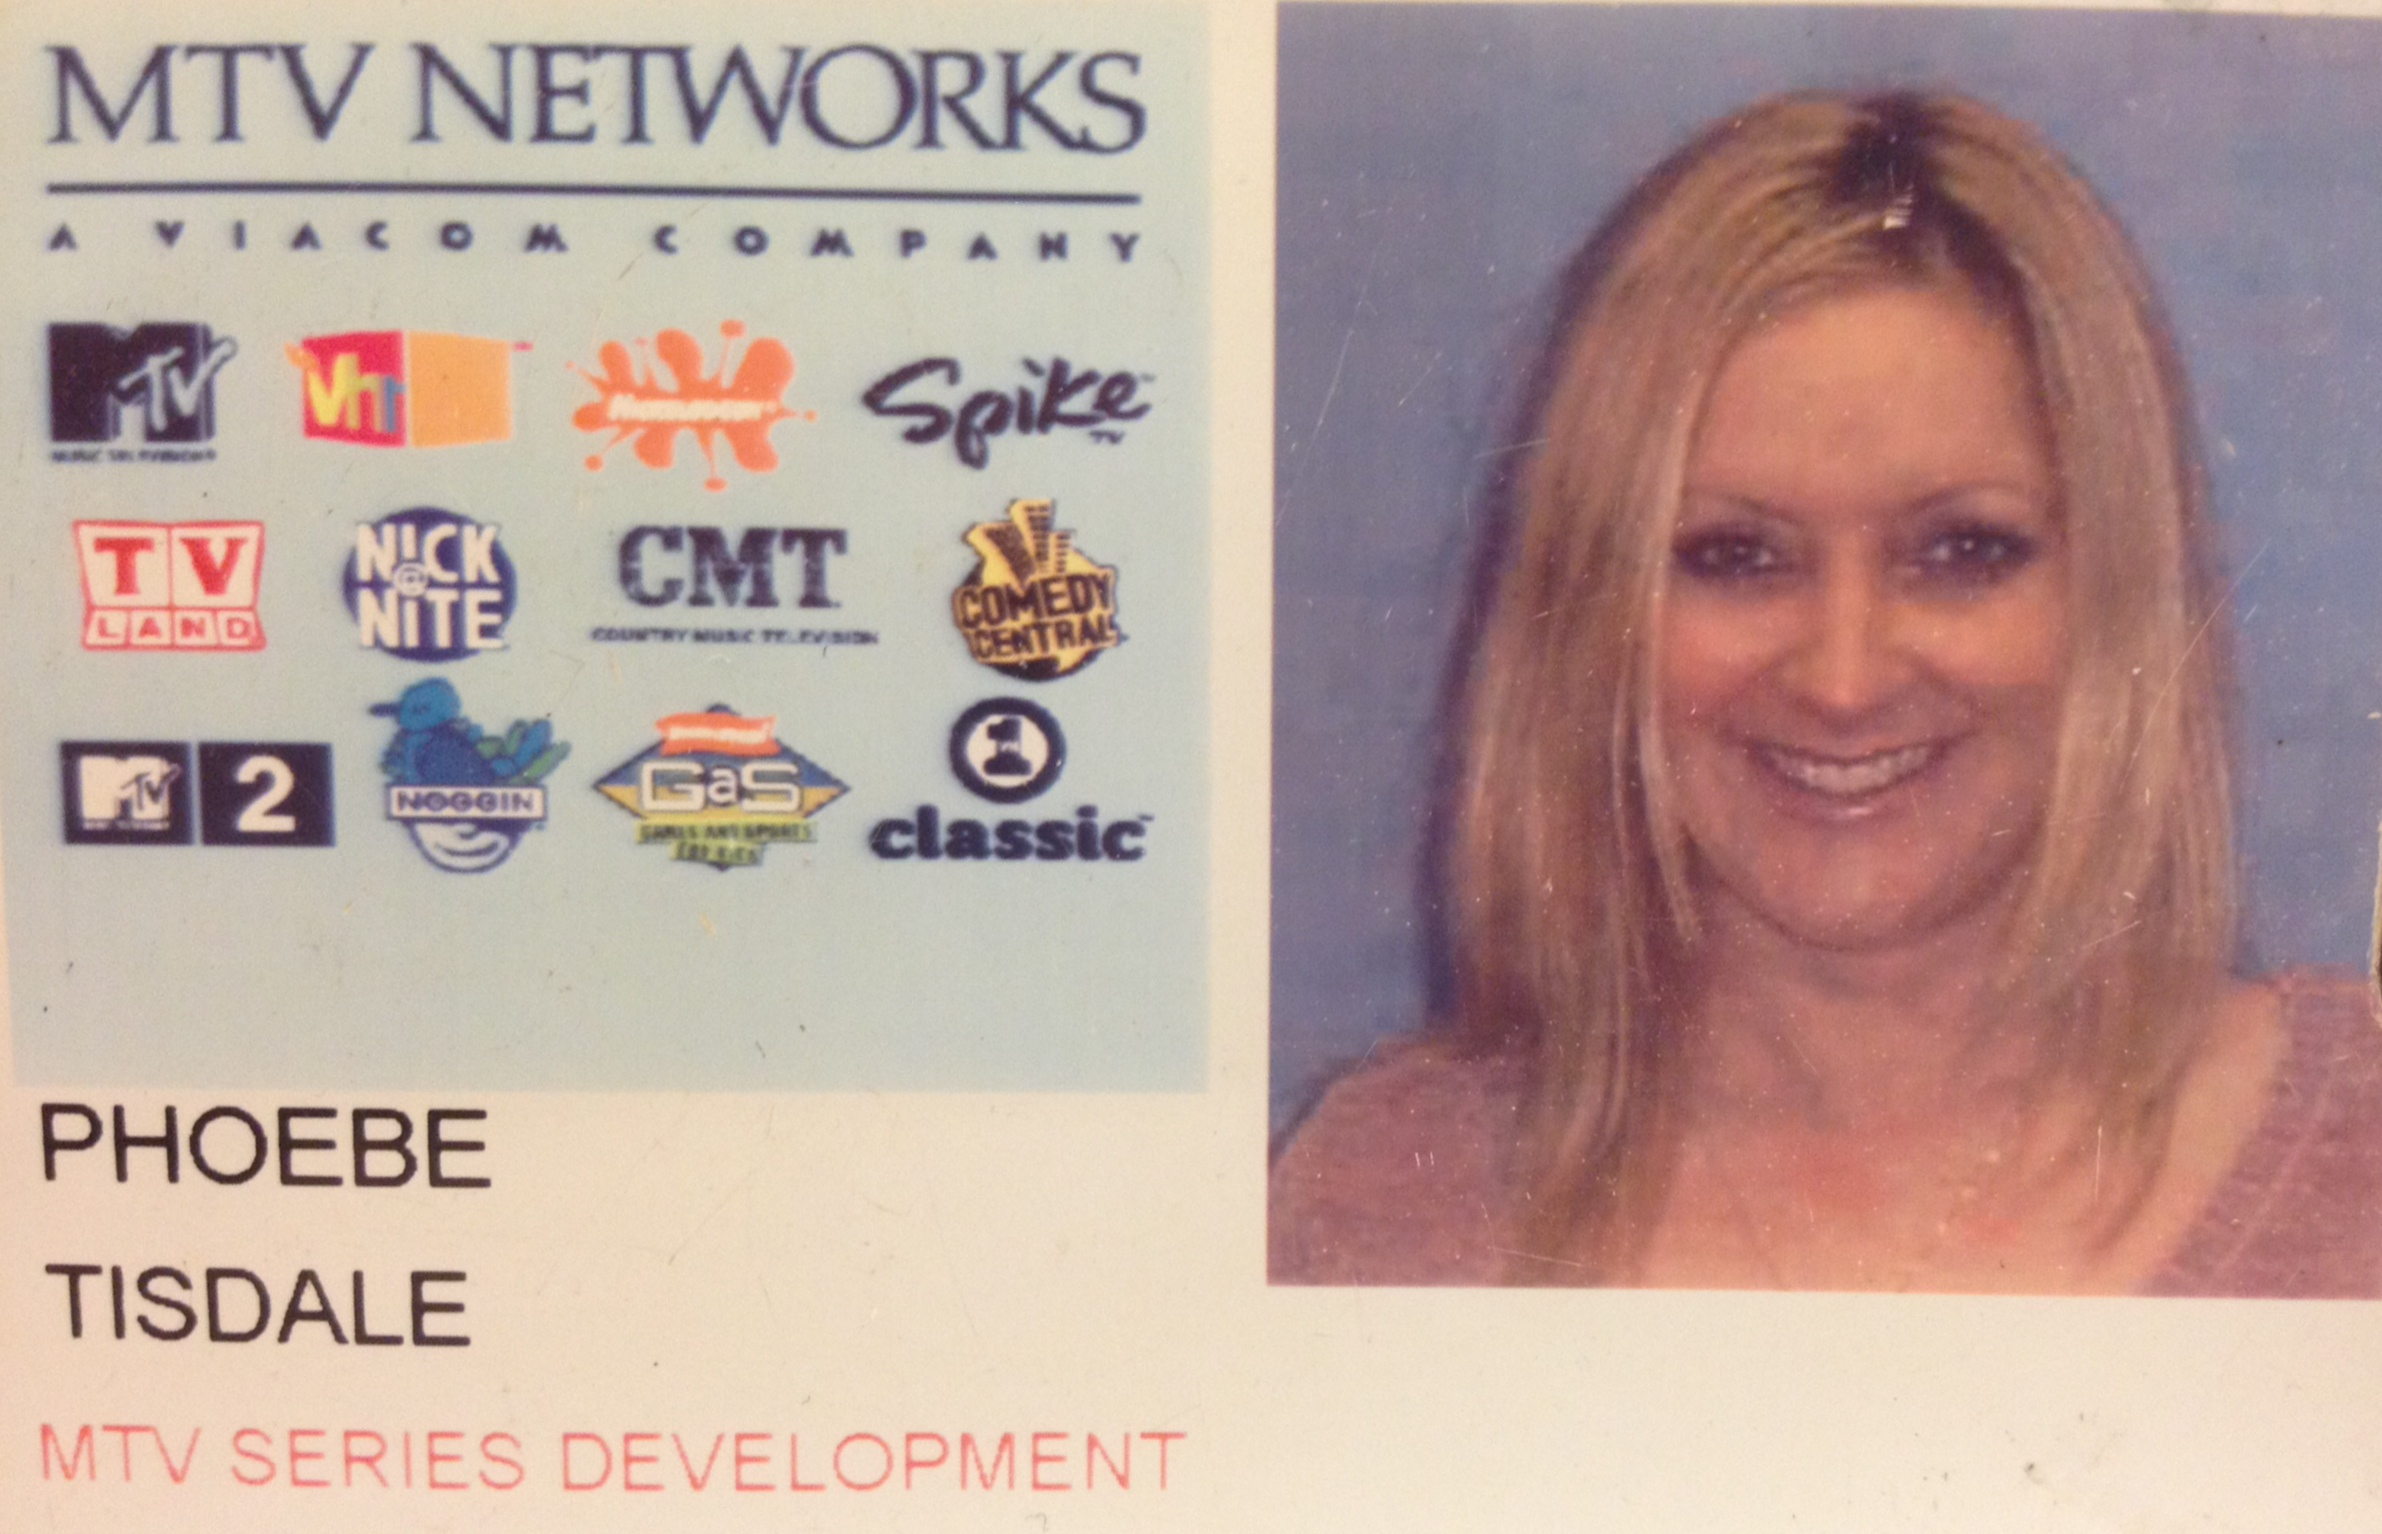 MTV Networks Credentials